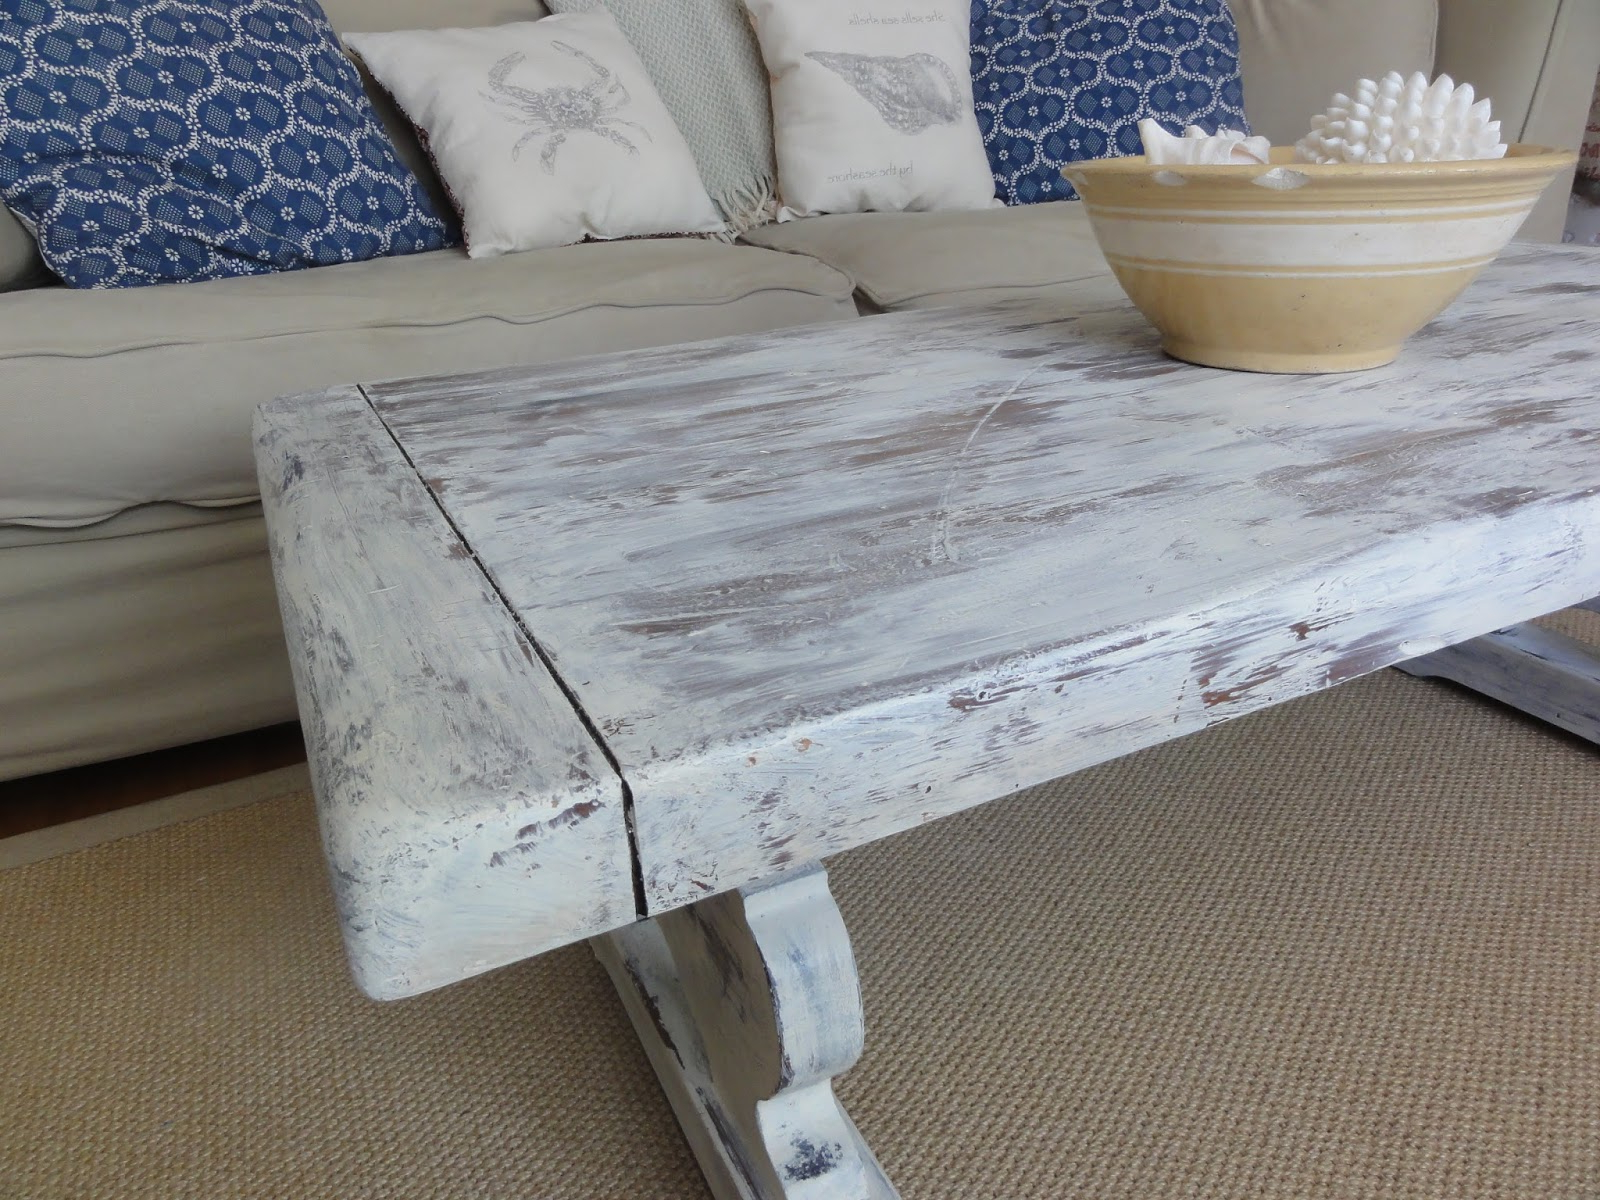 Probably Terrific Best Of The Best Rustic Teal End Table Pictures Throughout Preferred Limewash Coffee Tables (View 11 of 20)